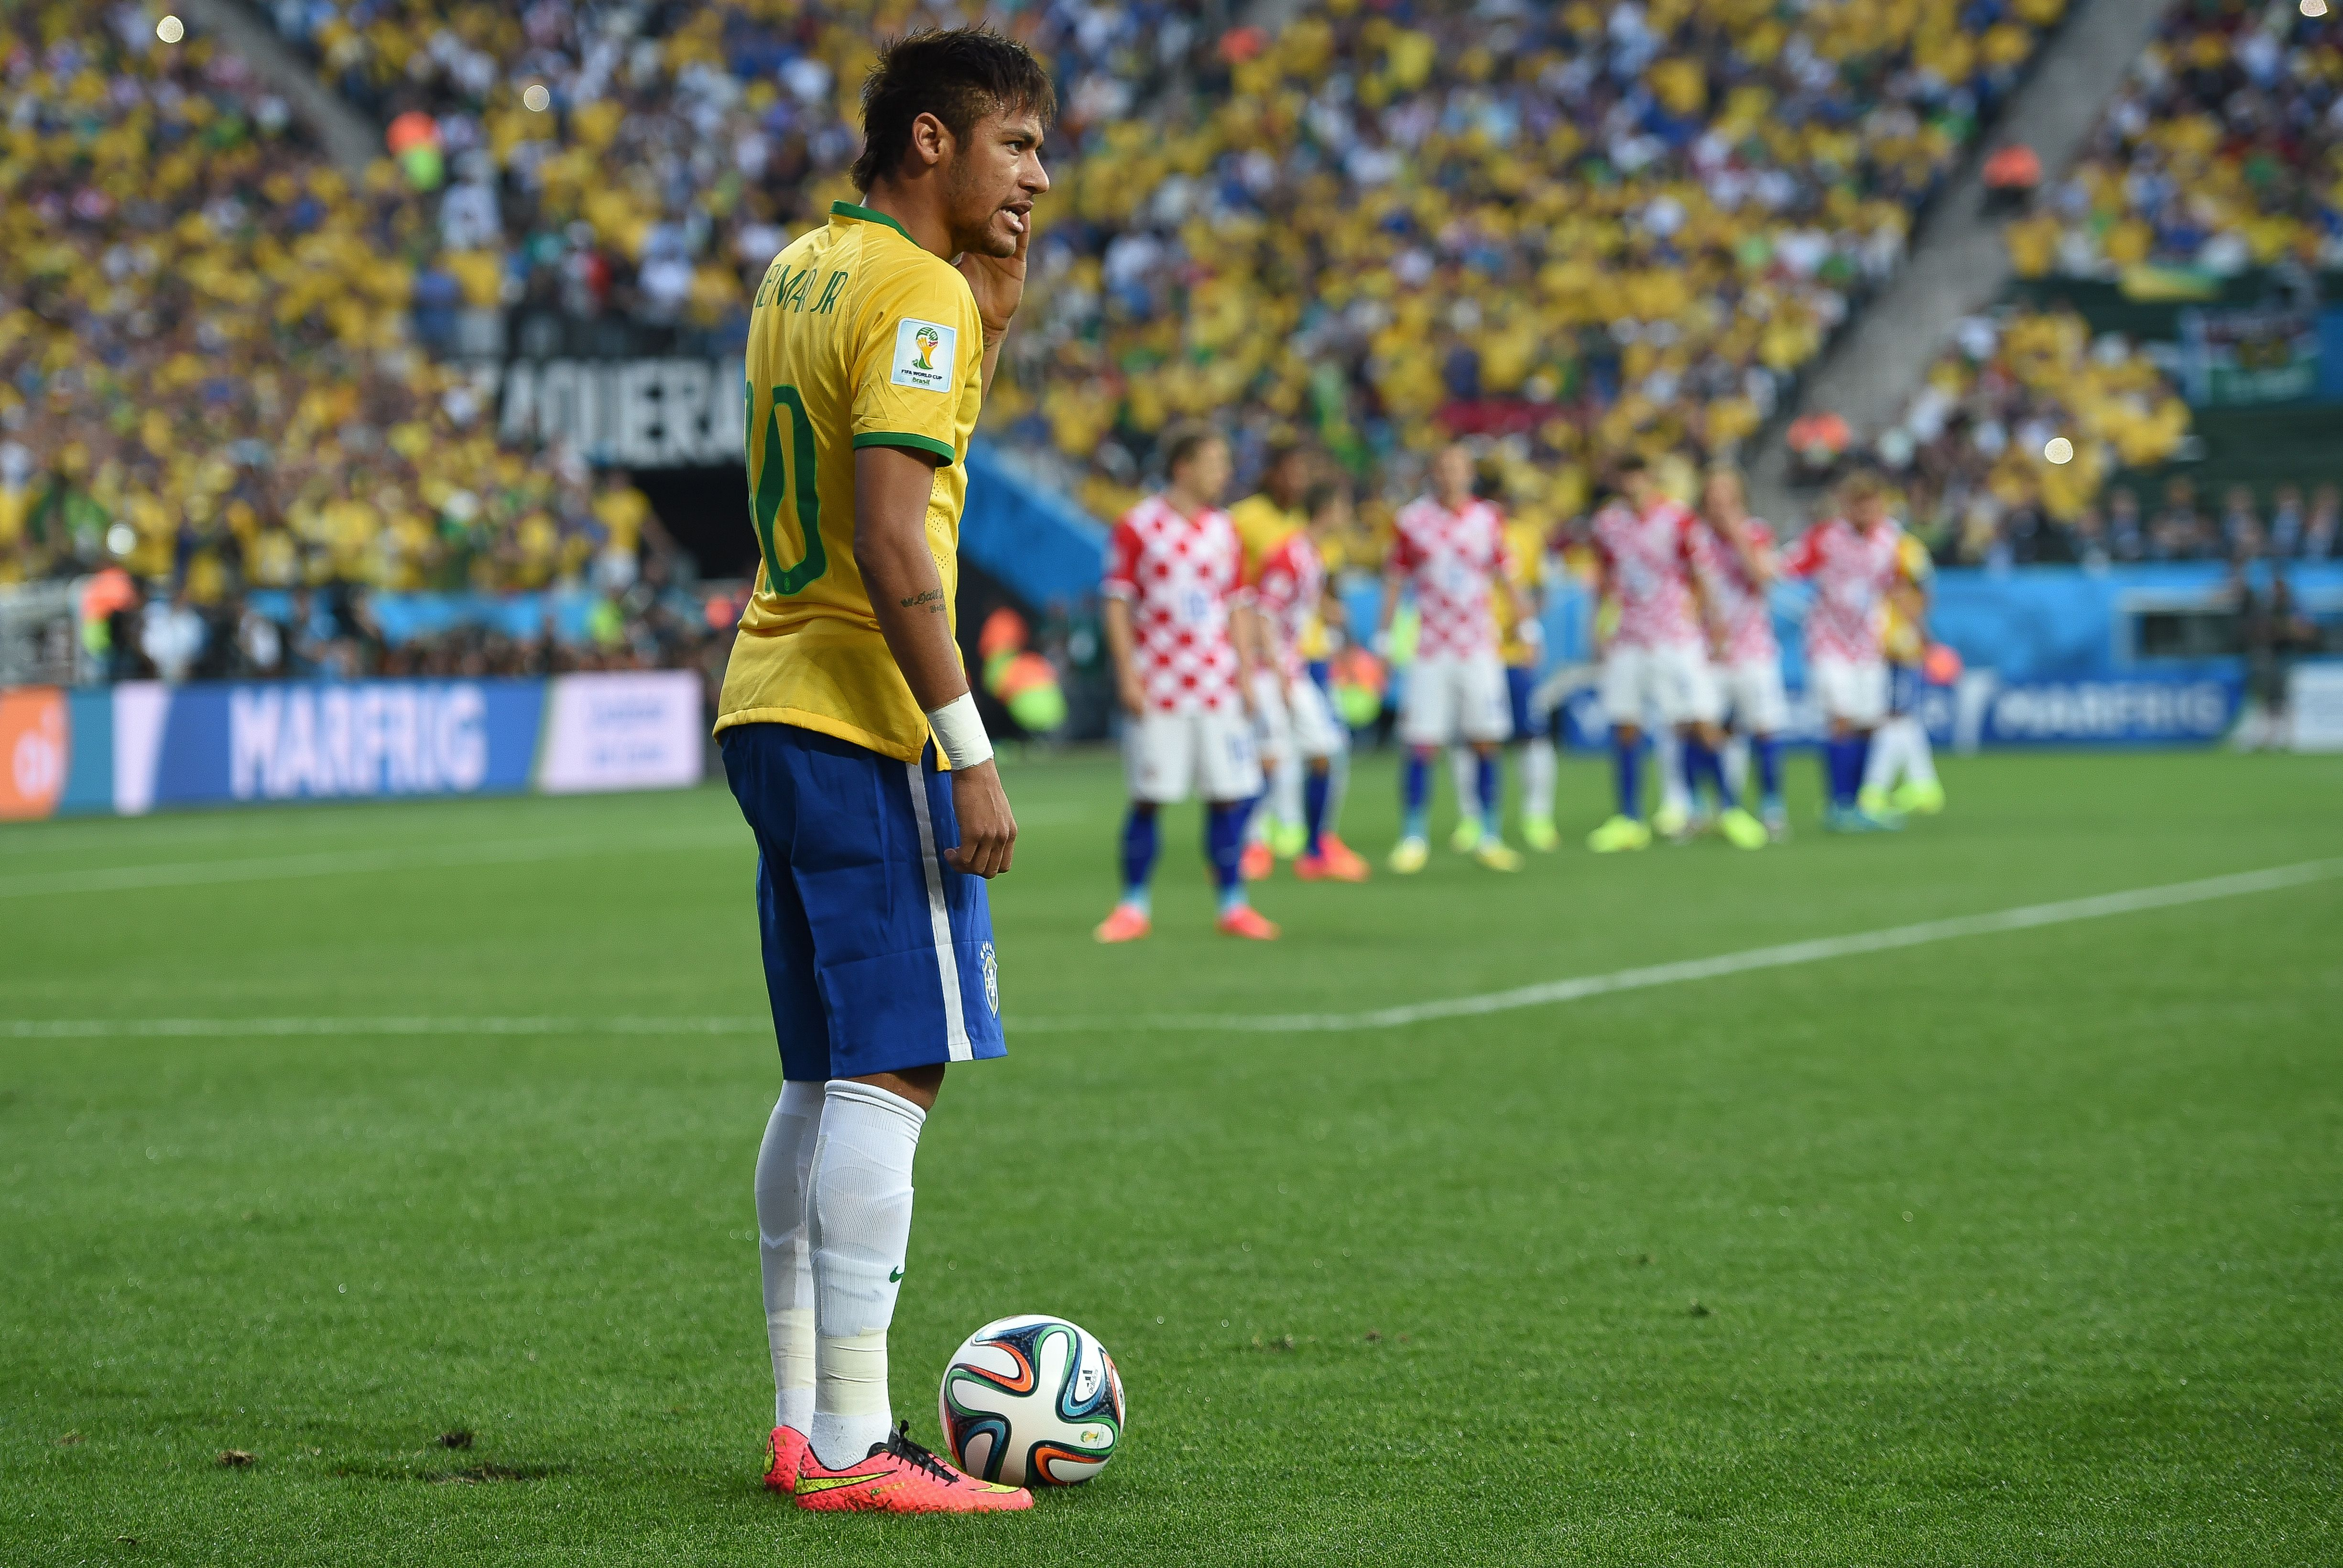 Brazil and Croatia match at the FIFA World Cup 2014-06-12 (02).jpg